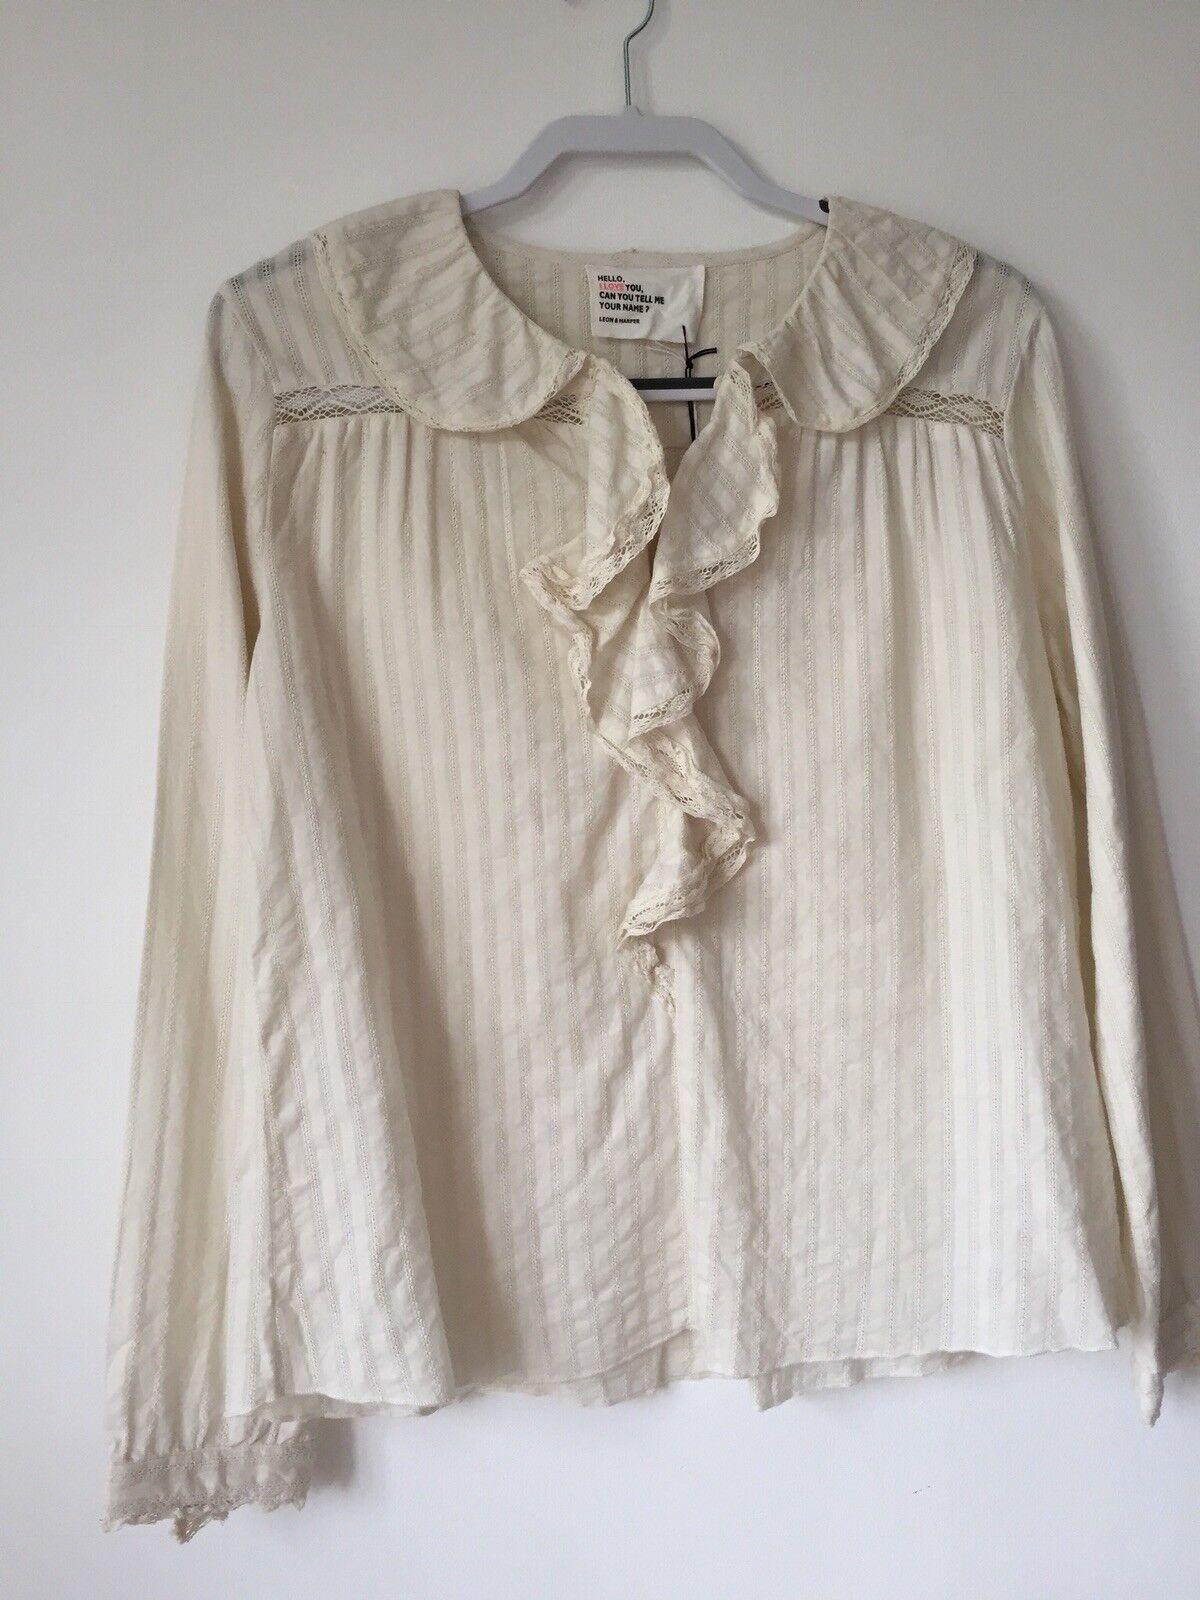 Leon &Harper Lace Ruffled Shirt